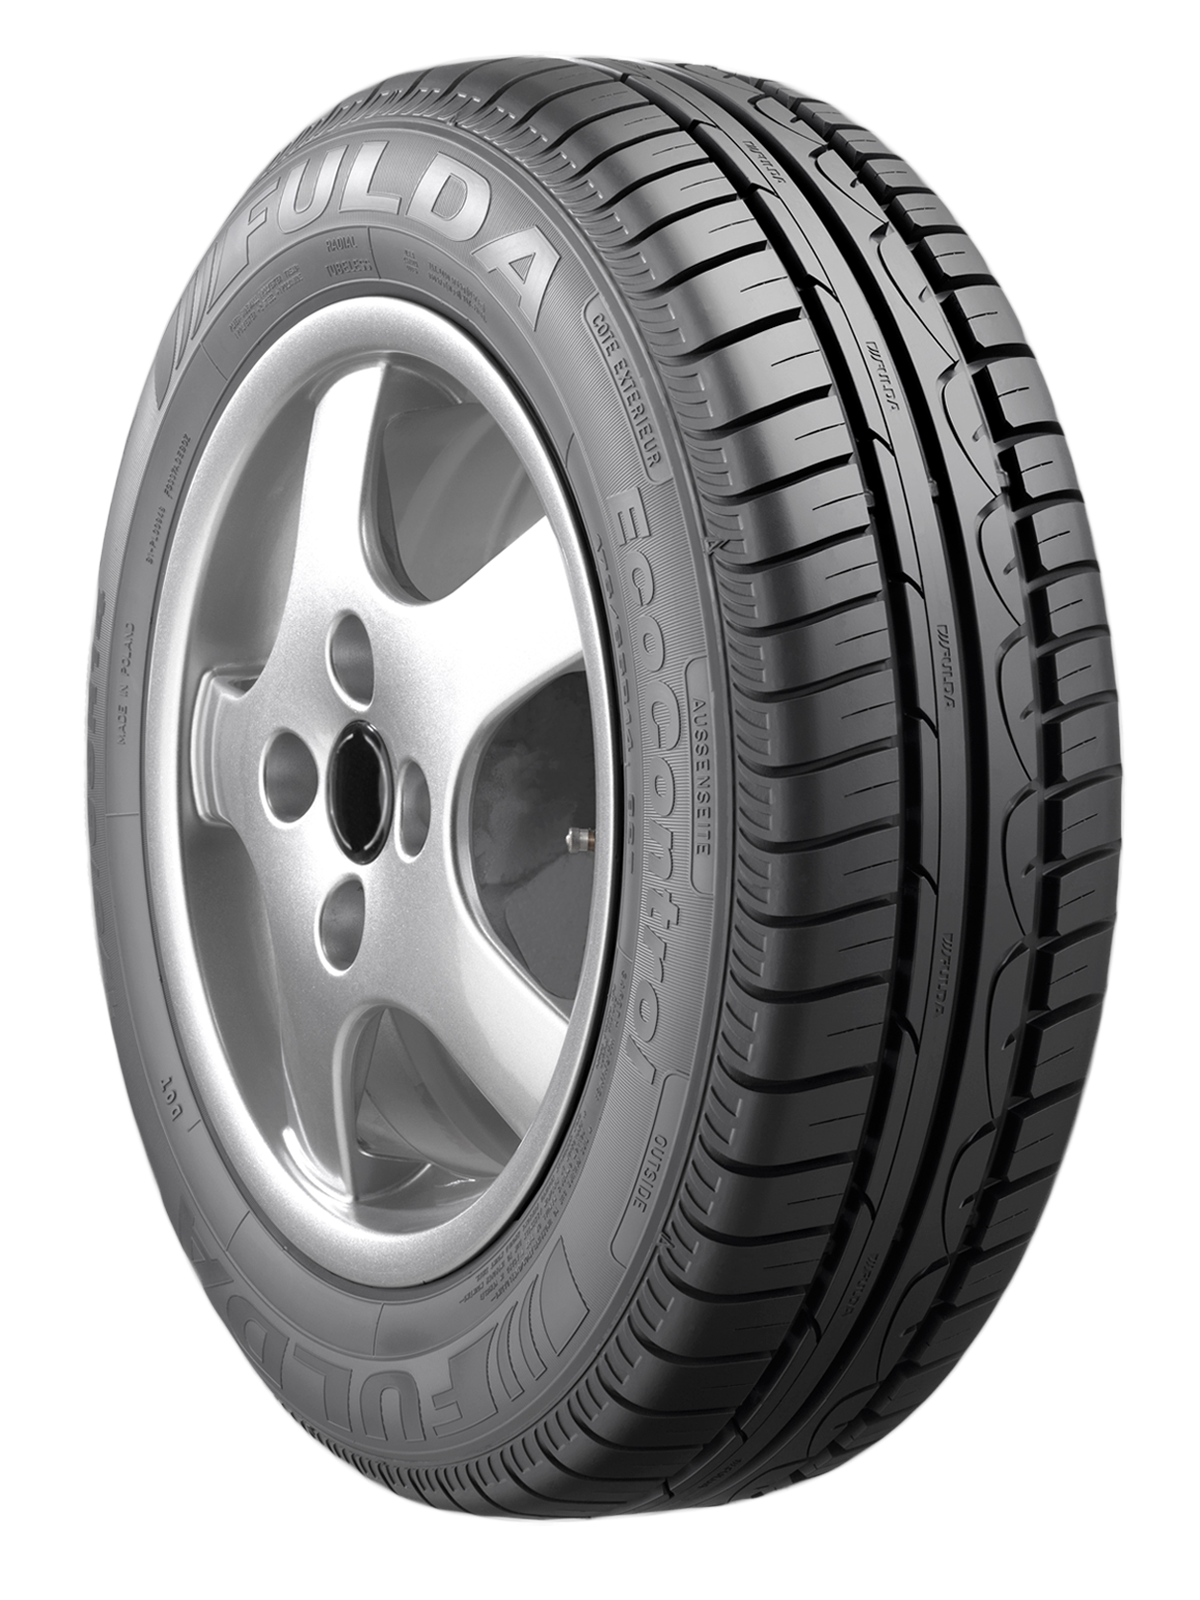 tire, fulda ecocontrol german tires made affordable #19375